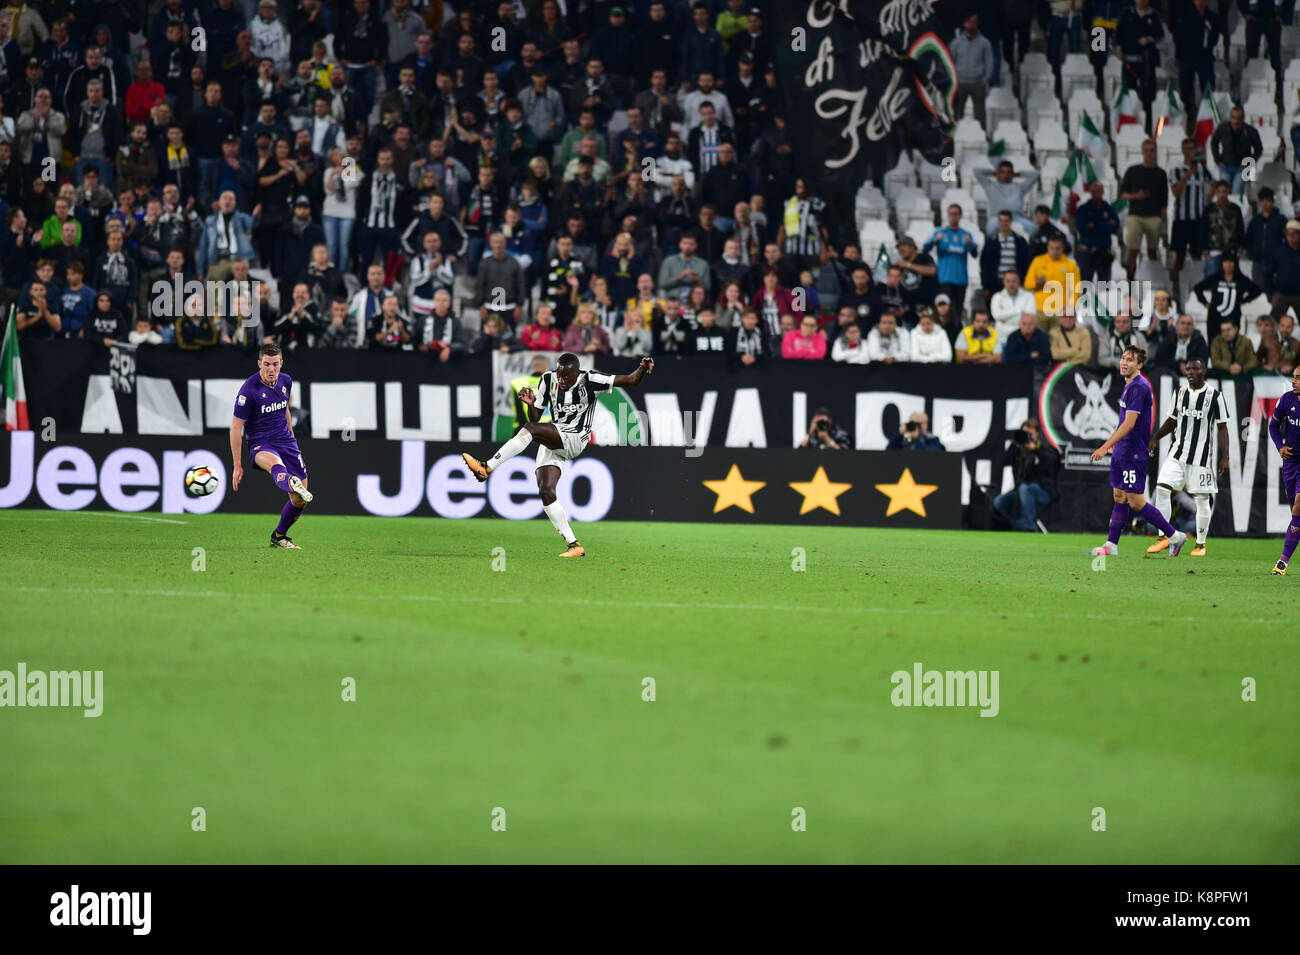 Turin, Italy. 20th Sep, 2017. the Serie A football match between Juventus FC vs ACF Fiorentina at Allianz Stadium - Stock Image